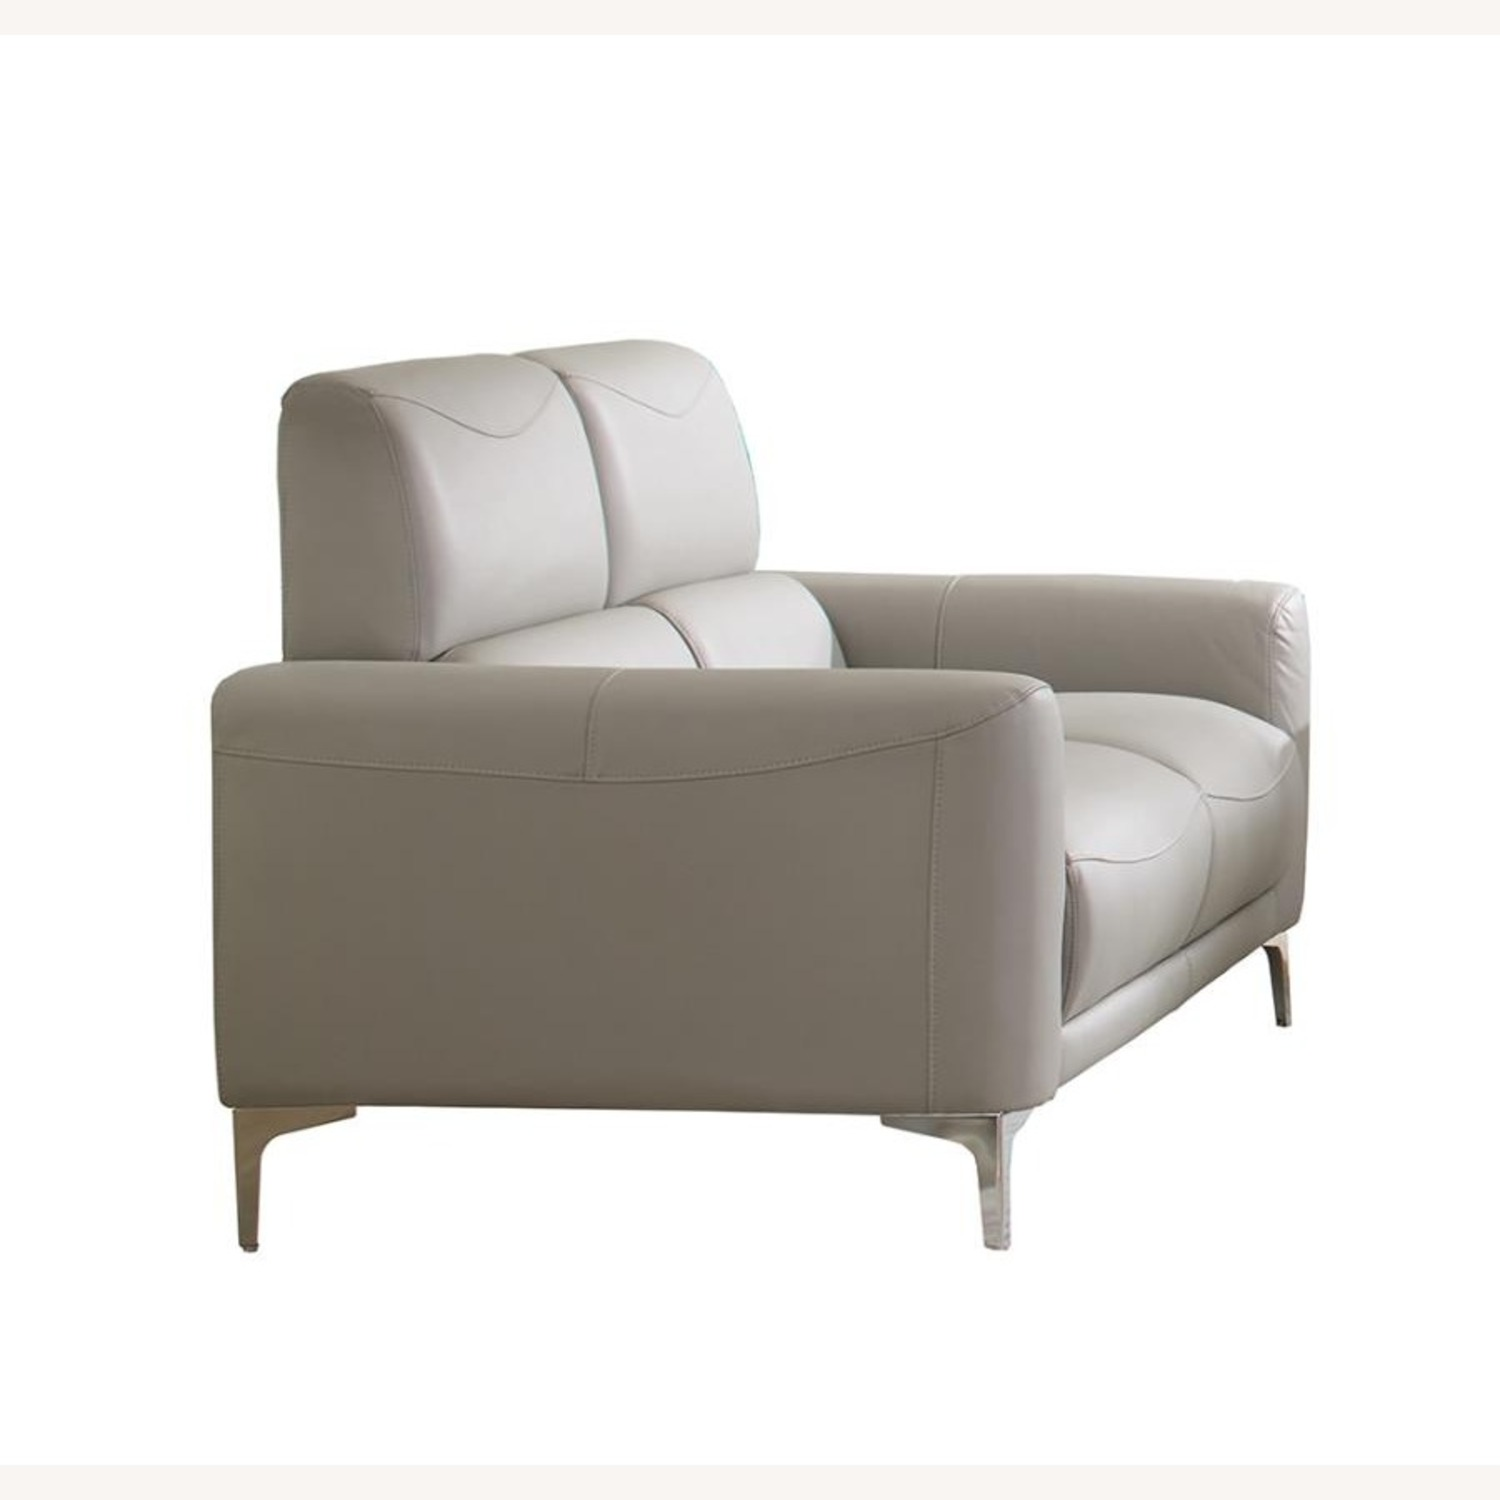 Loveseat In Soft Taupe Leatherette Upholstery - image-0